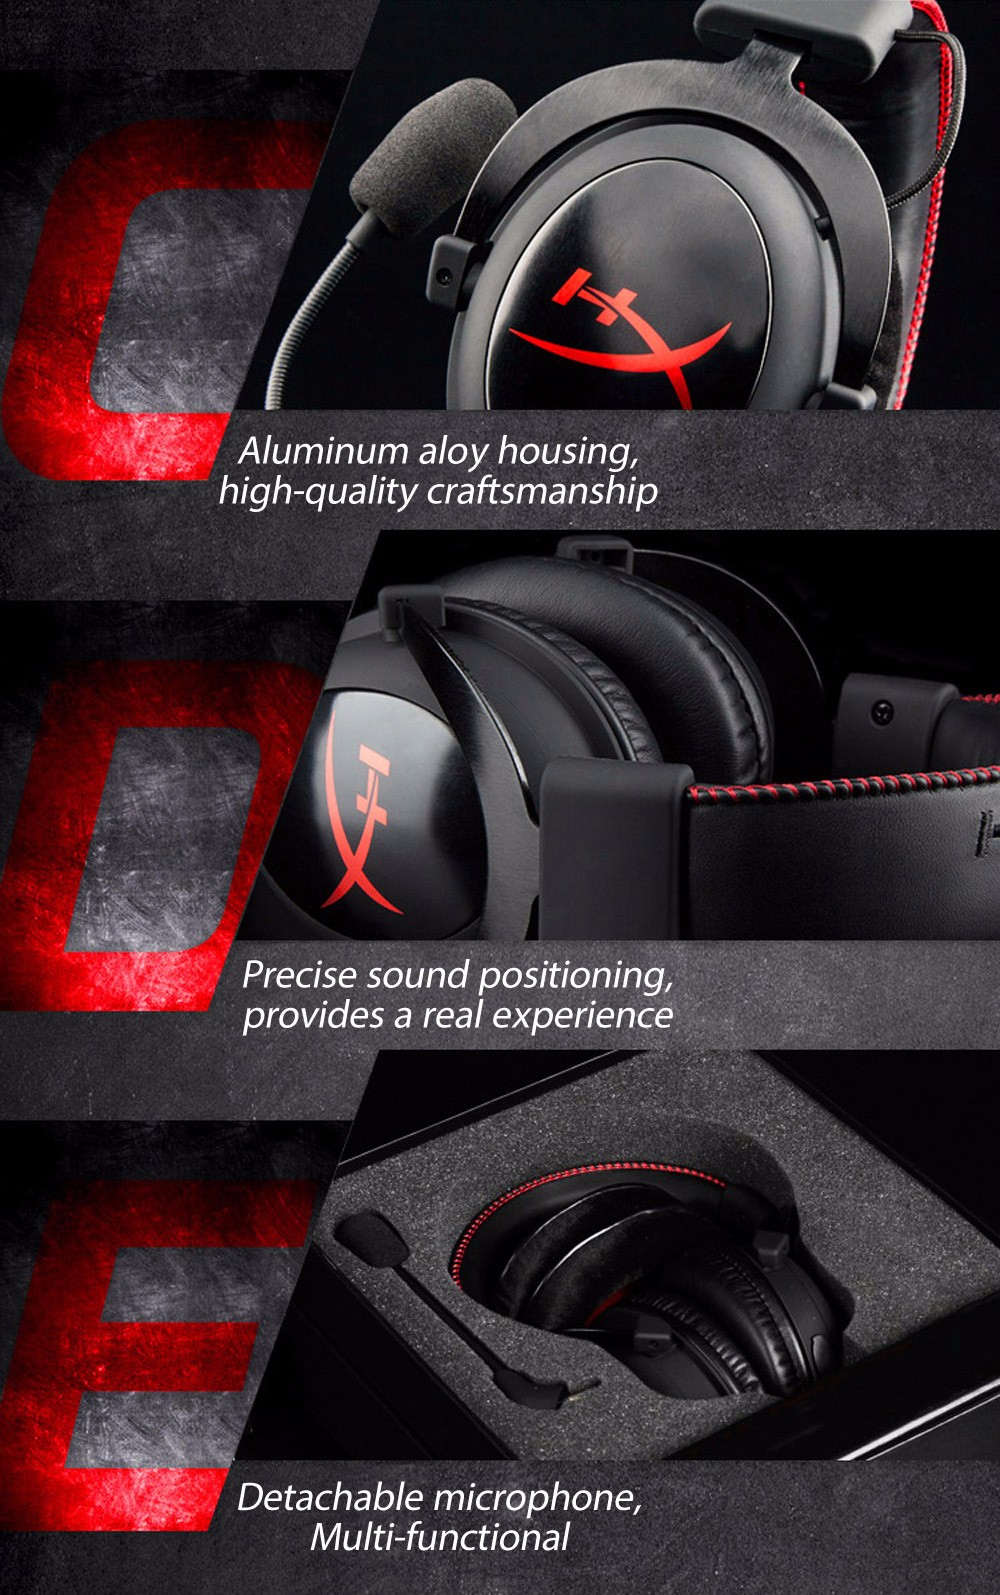 Kingston HYPERX Cloud Core KHX - HSCC - BK - FR Professional Gaming Headsets Closed Ear Cups Noise Canceling with Mic